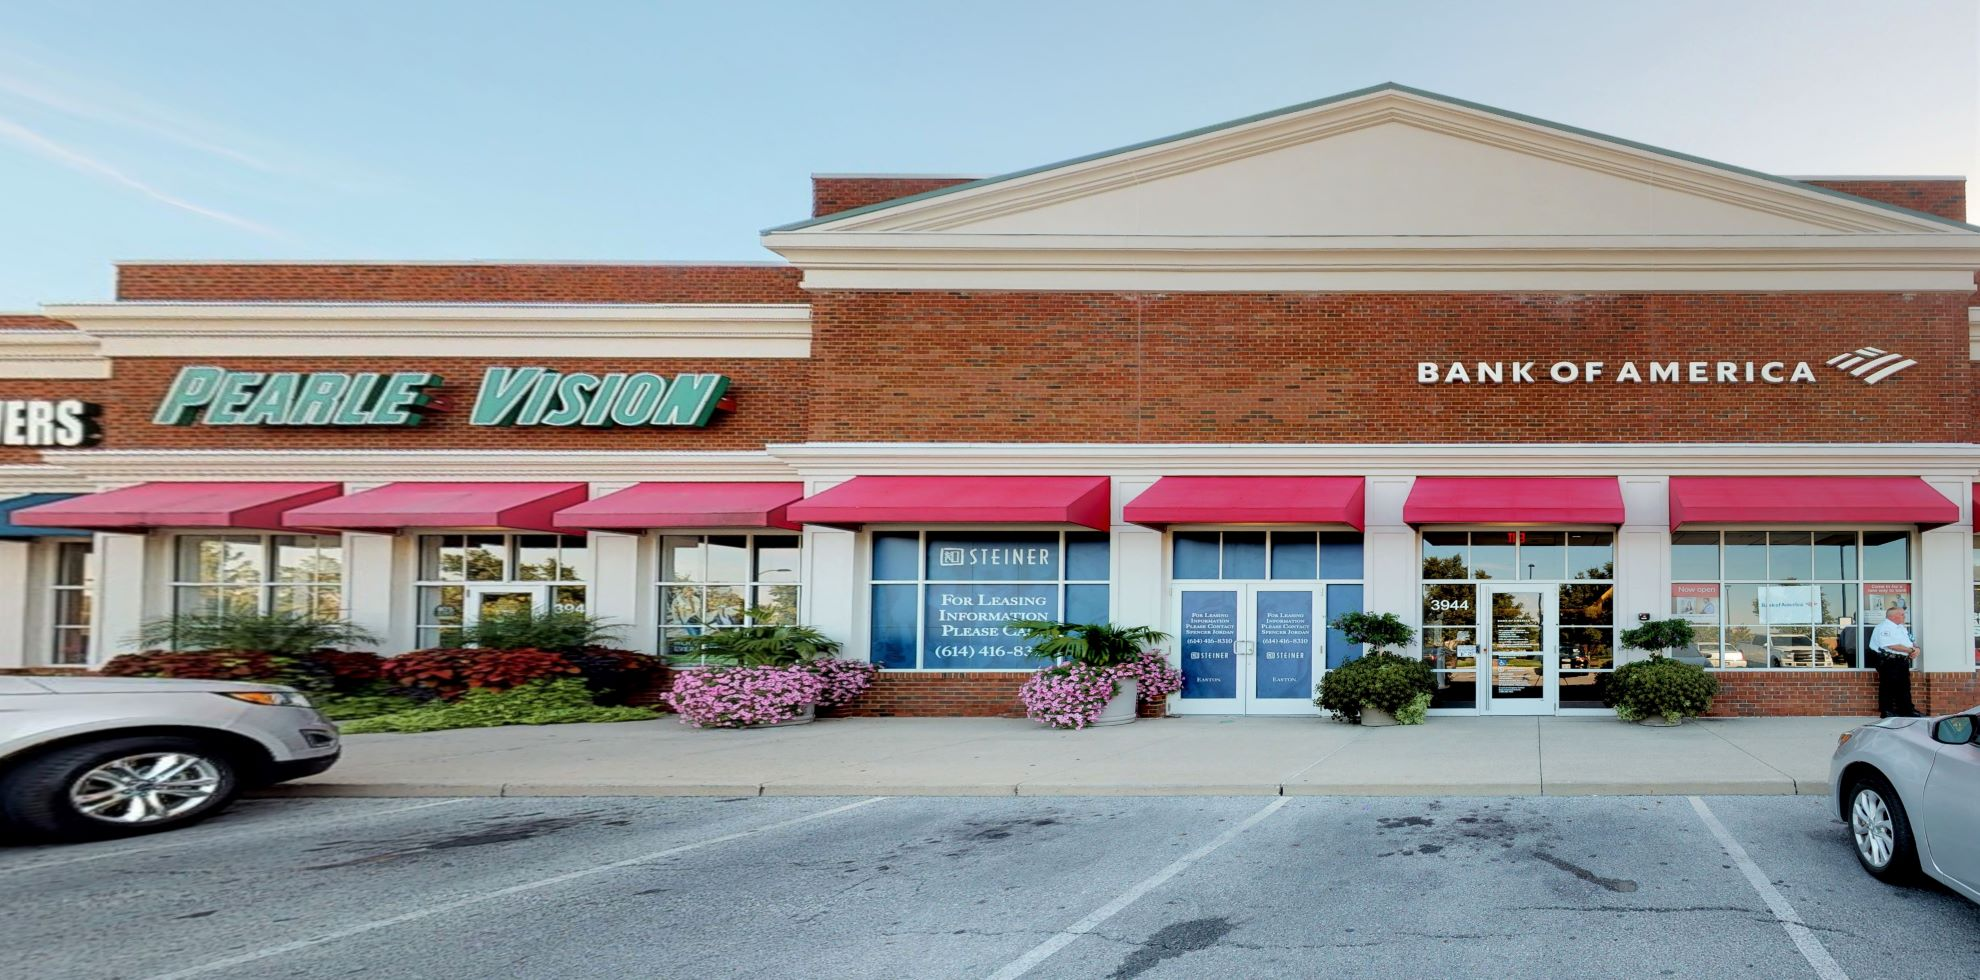 Bank of America Advanced Center with walk-up ATM | 3944 Morse Crossing, Columbus, OH 43219